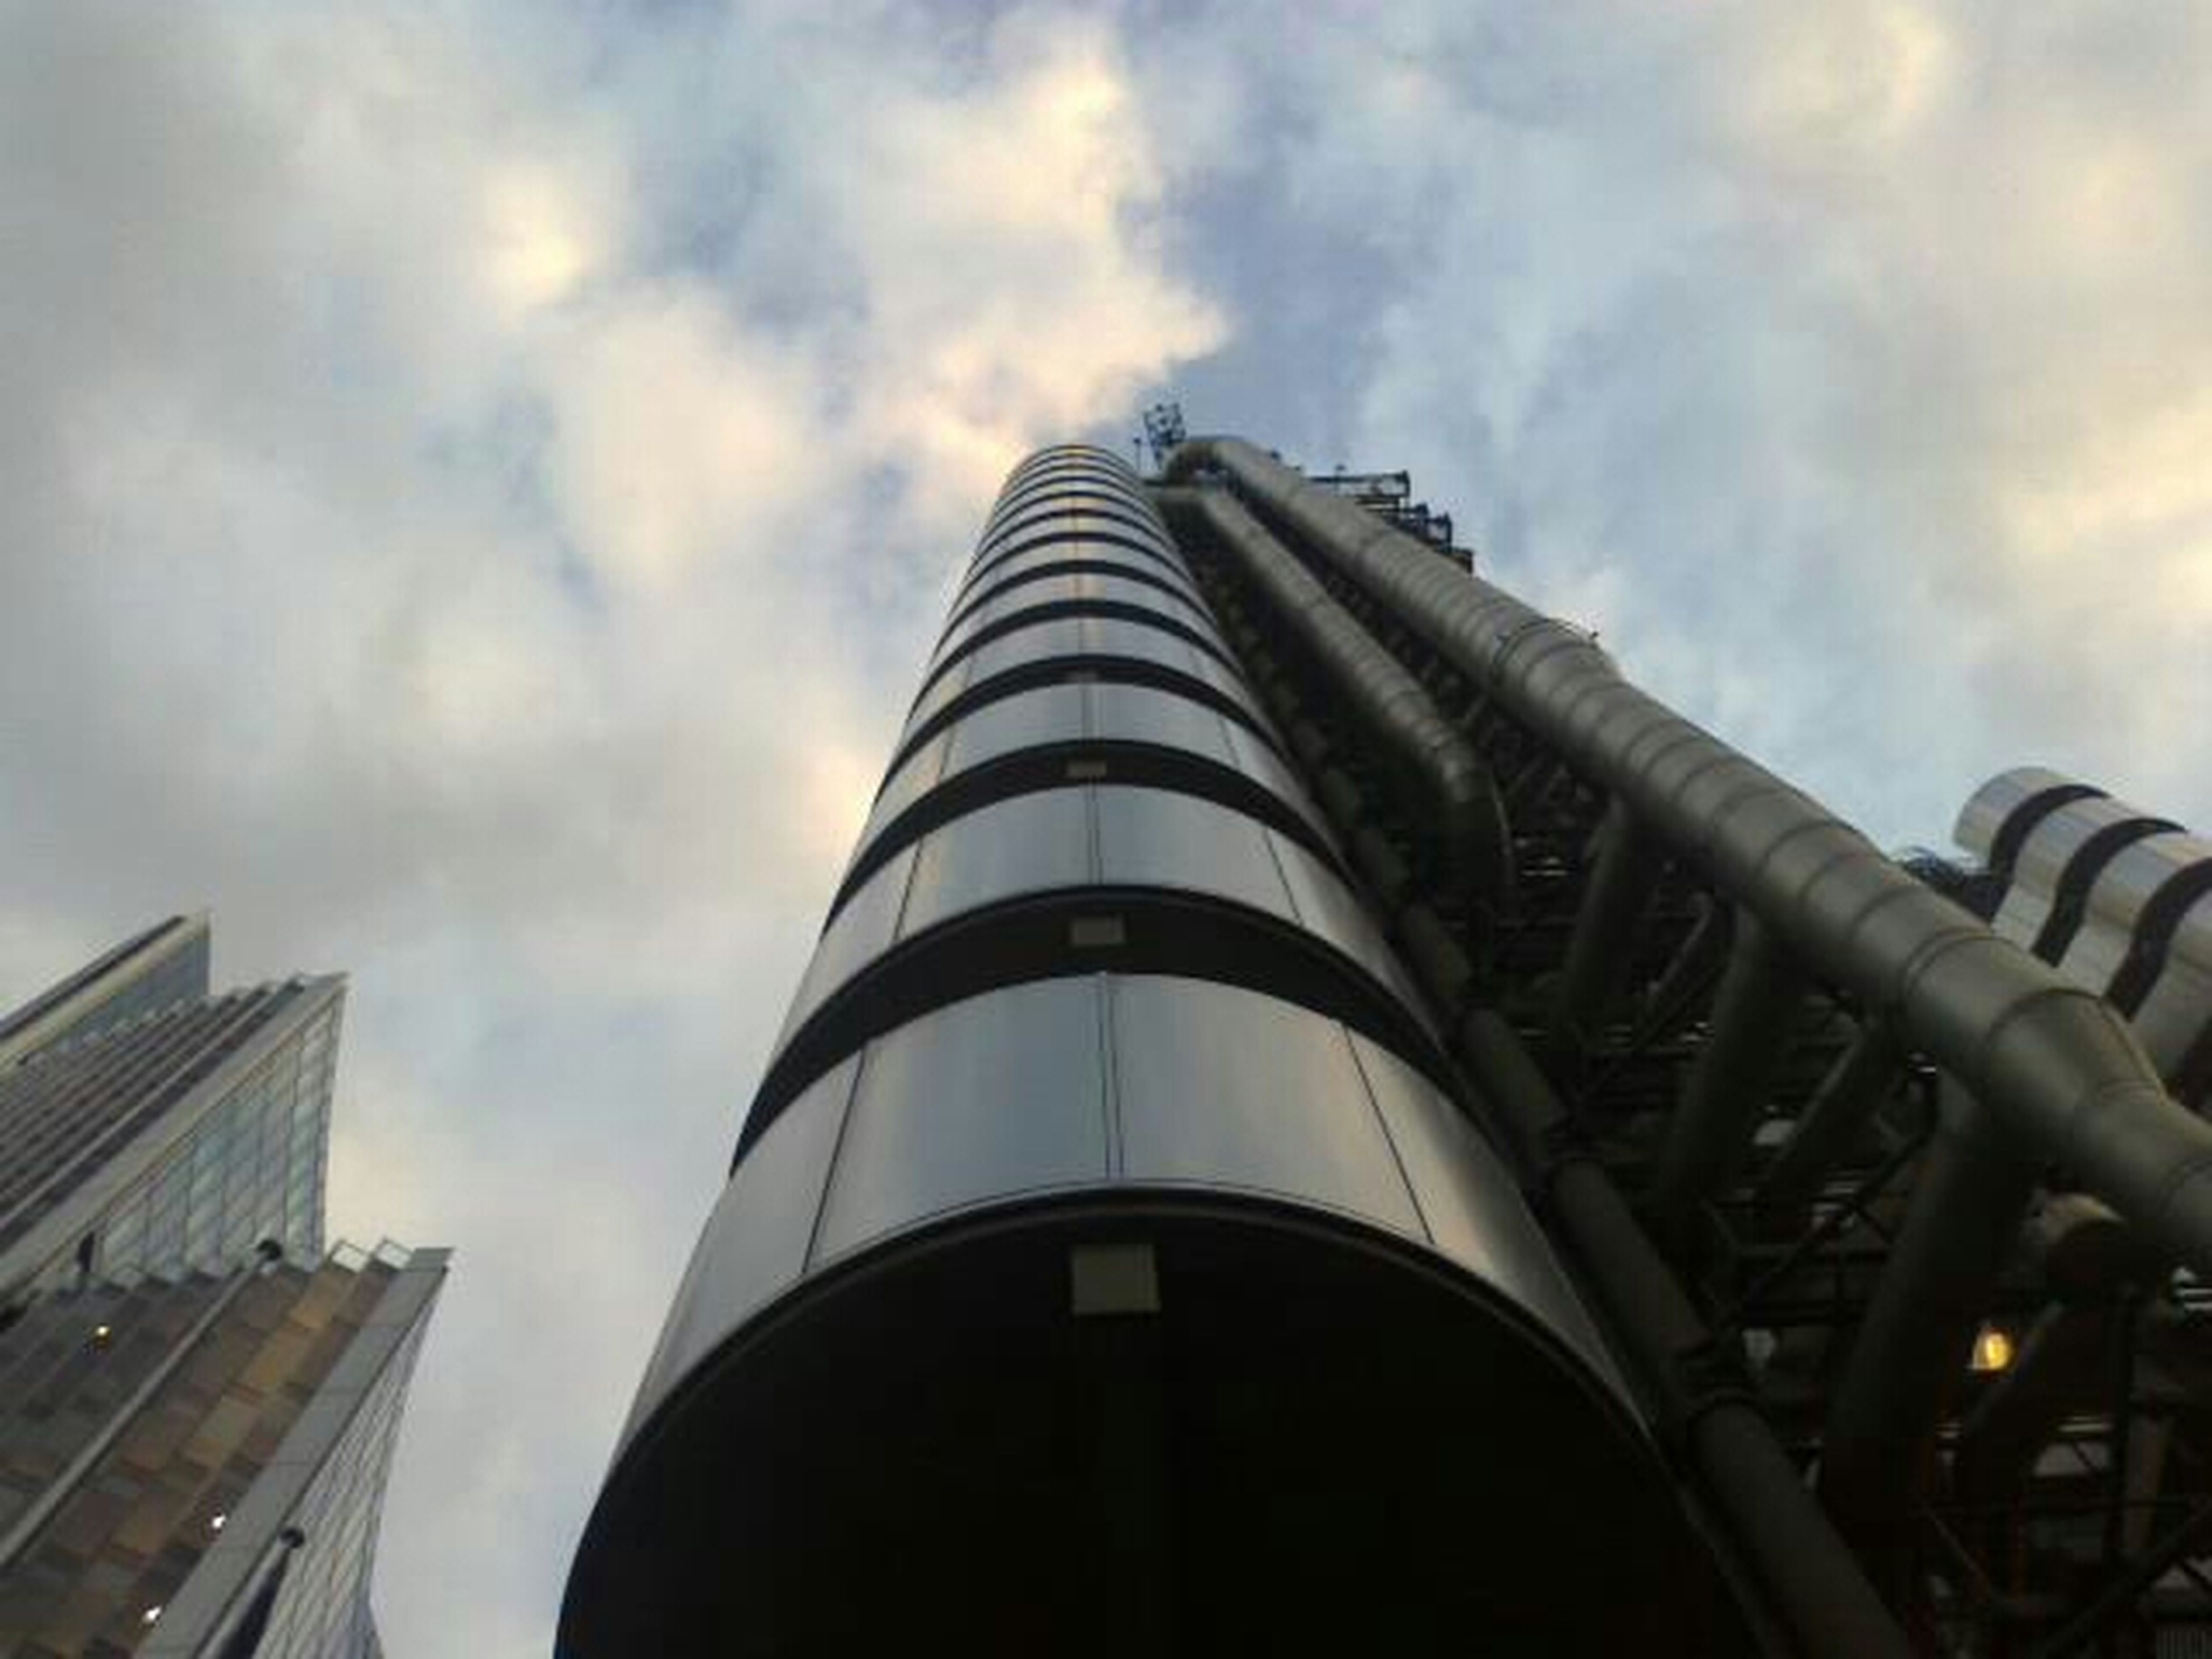 architecture, built structure, building exterior, low angle view, sky, modern, city, cloud - sky, tall - high, office building, skyscraper, tower, building, cloudy, cloud, day, outdoors, tall, capital cities, no people